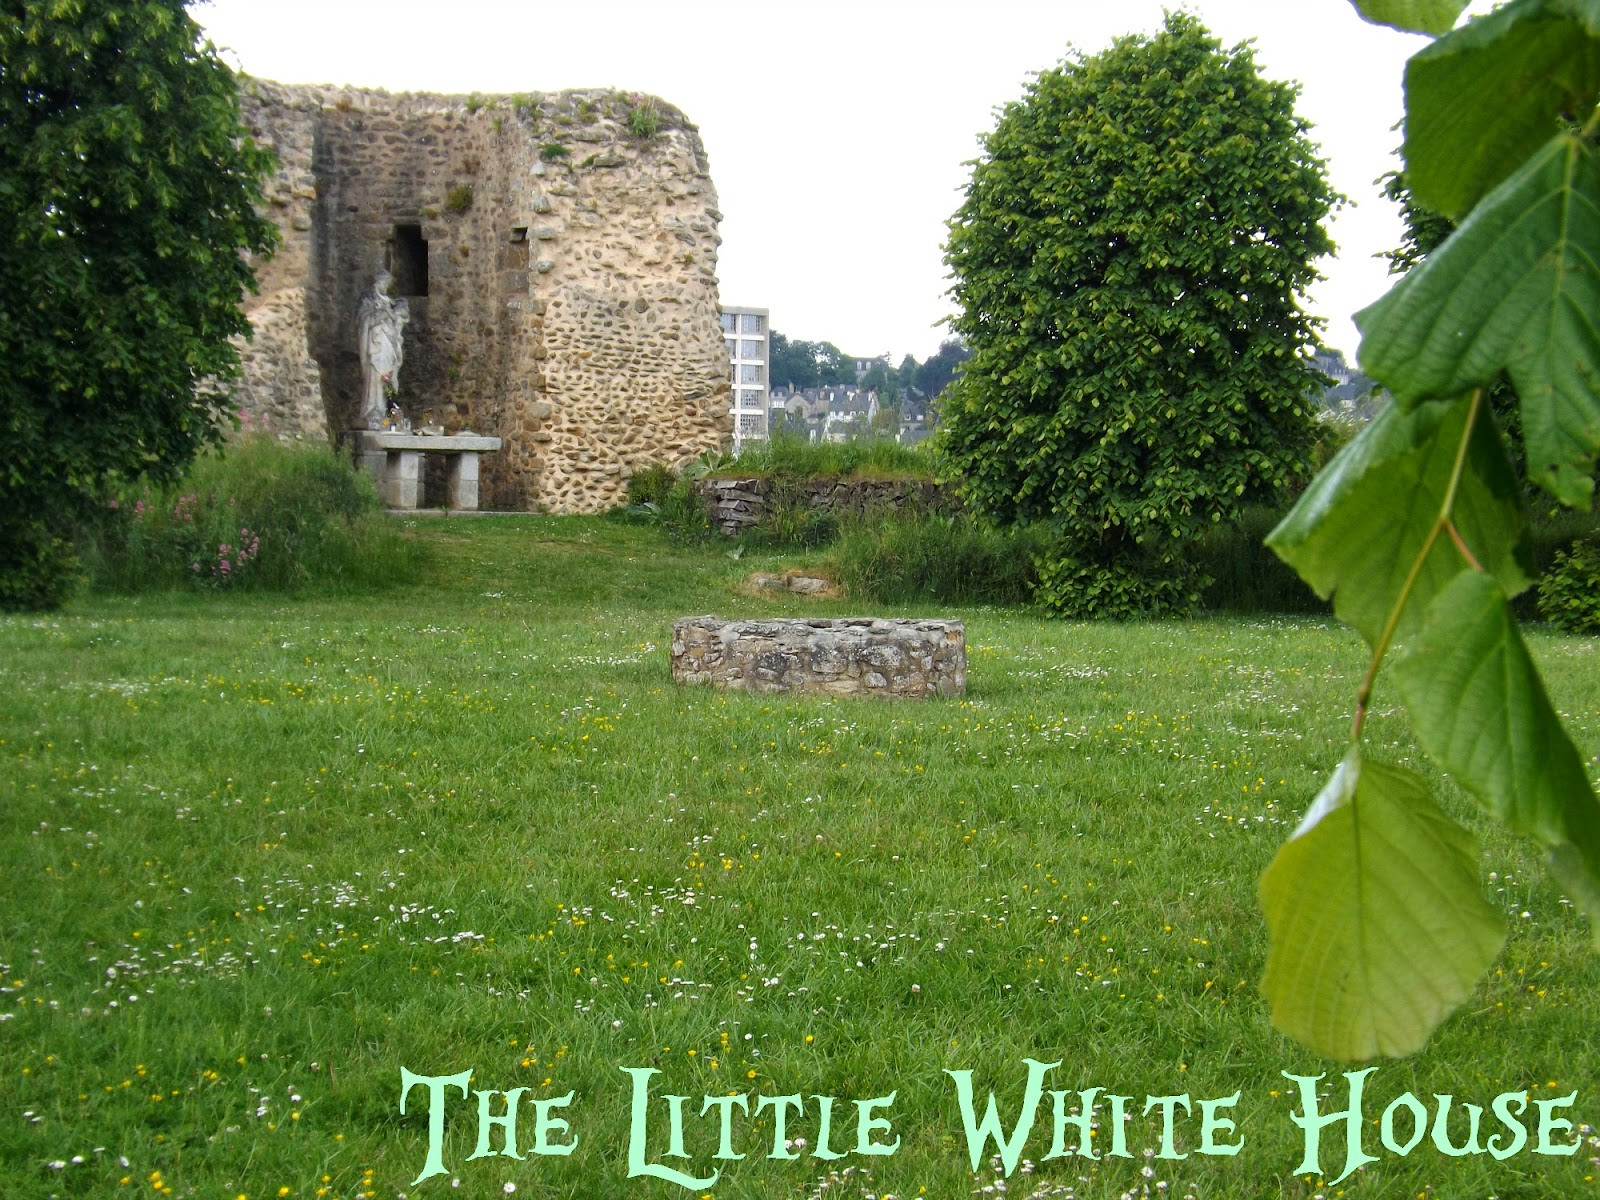 http://thelittlewhitehouseontheseaside.blogspot.fr/2014/06/old-castle-of-lehon-brittany.html